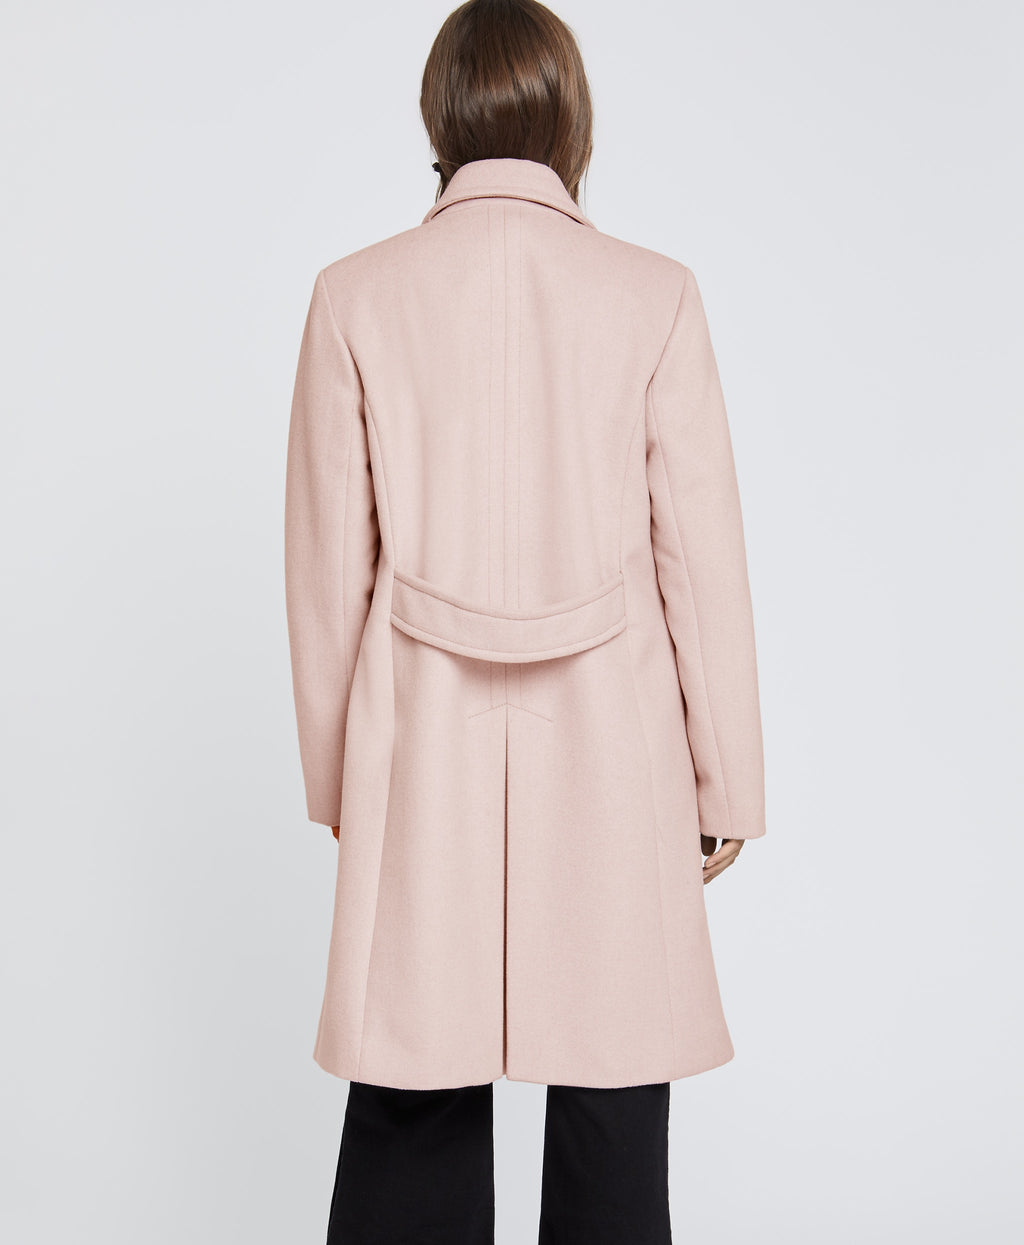 Blush Double Breasted Coat | Blush Double Breasted Coat